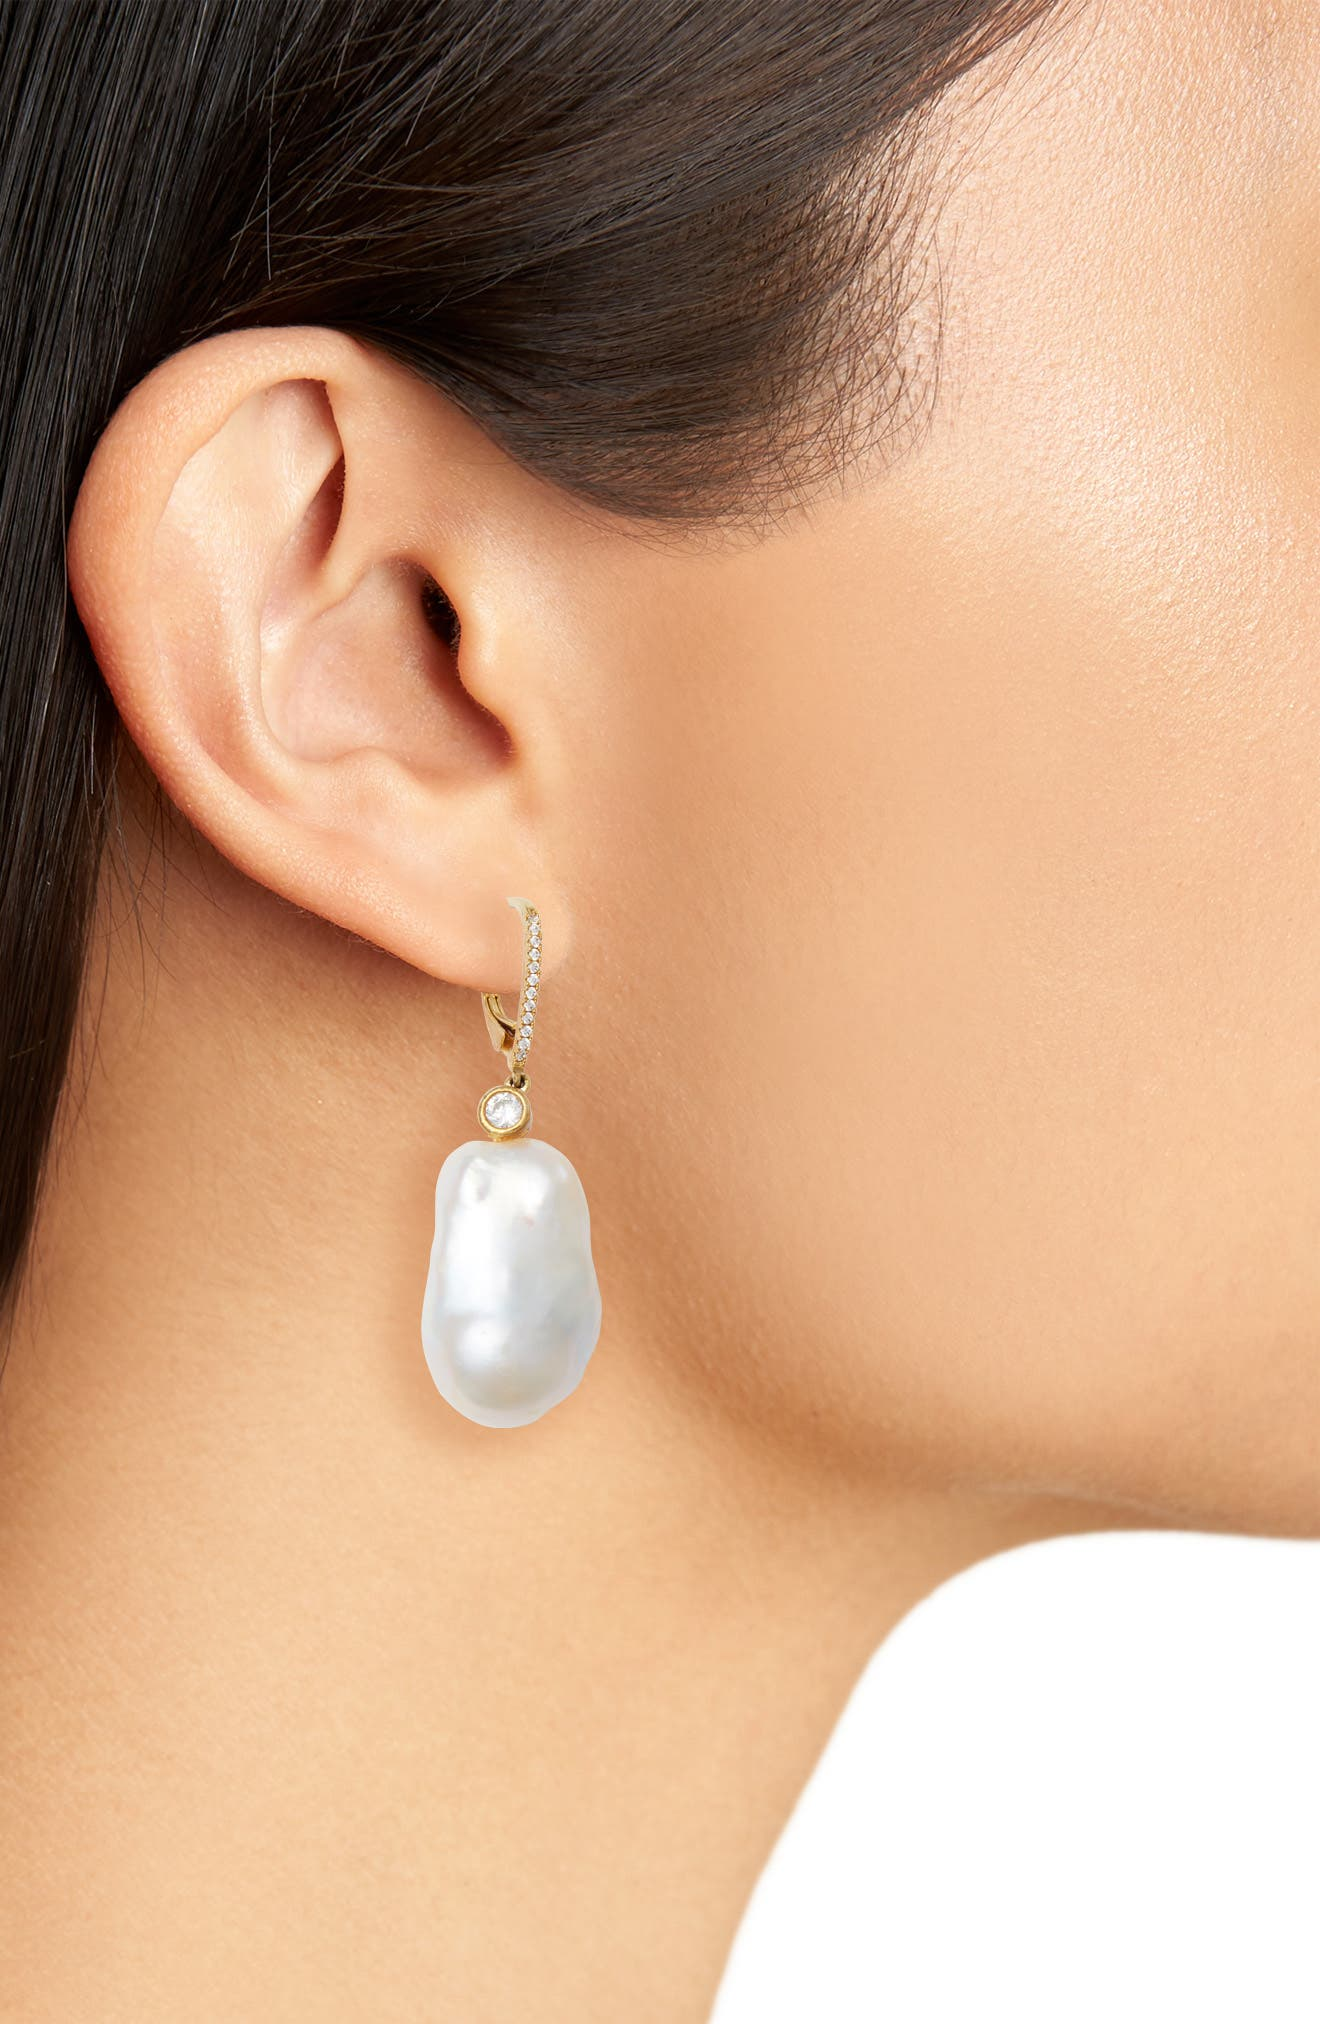 Baroque Pearl Earrings,                             Alternate thumbnail 2, color,                             GOLD/ BAROQUE PEARL/ WHITE CZ